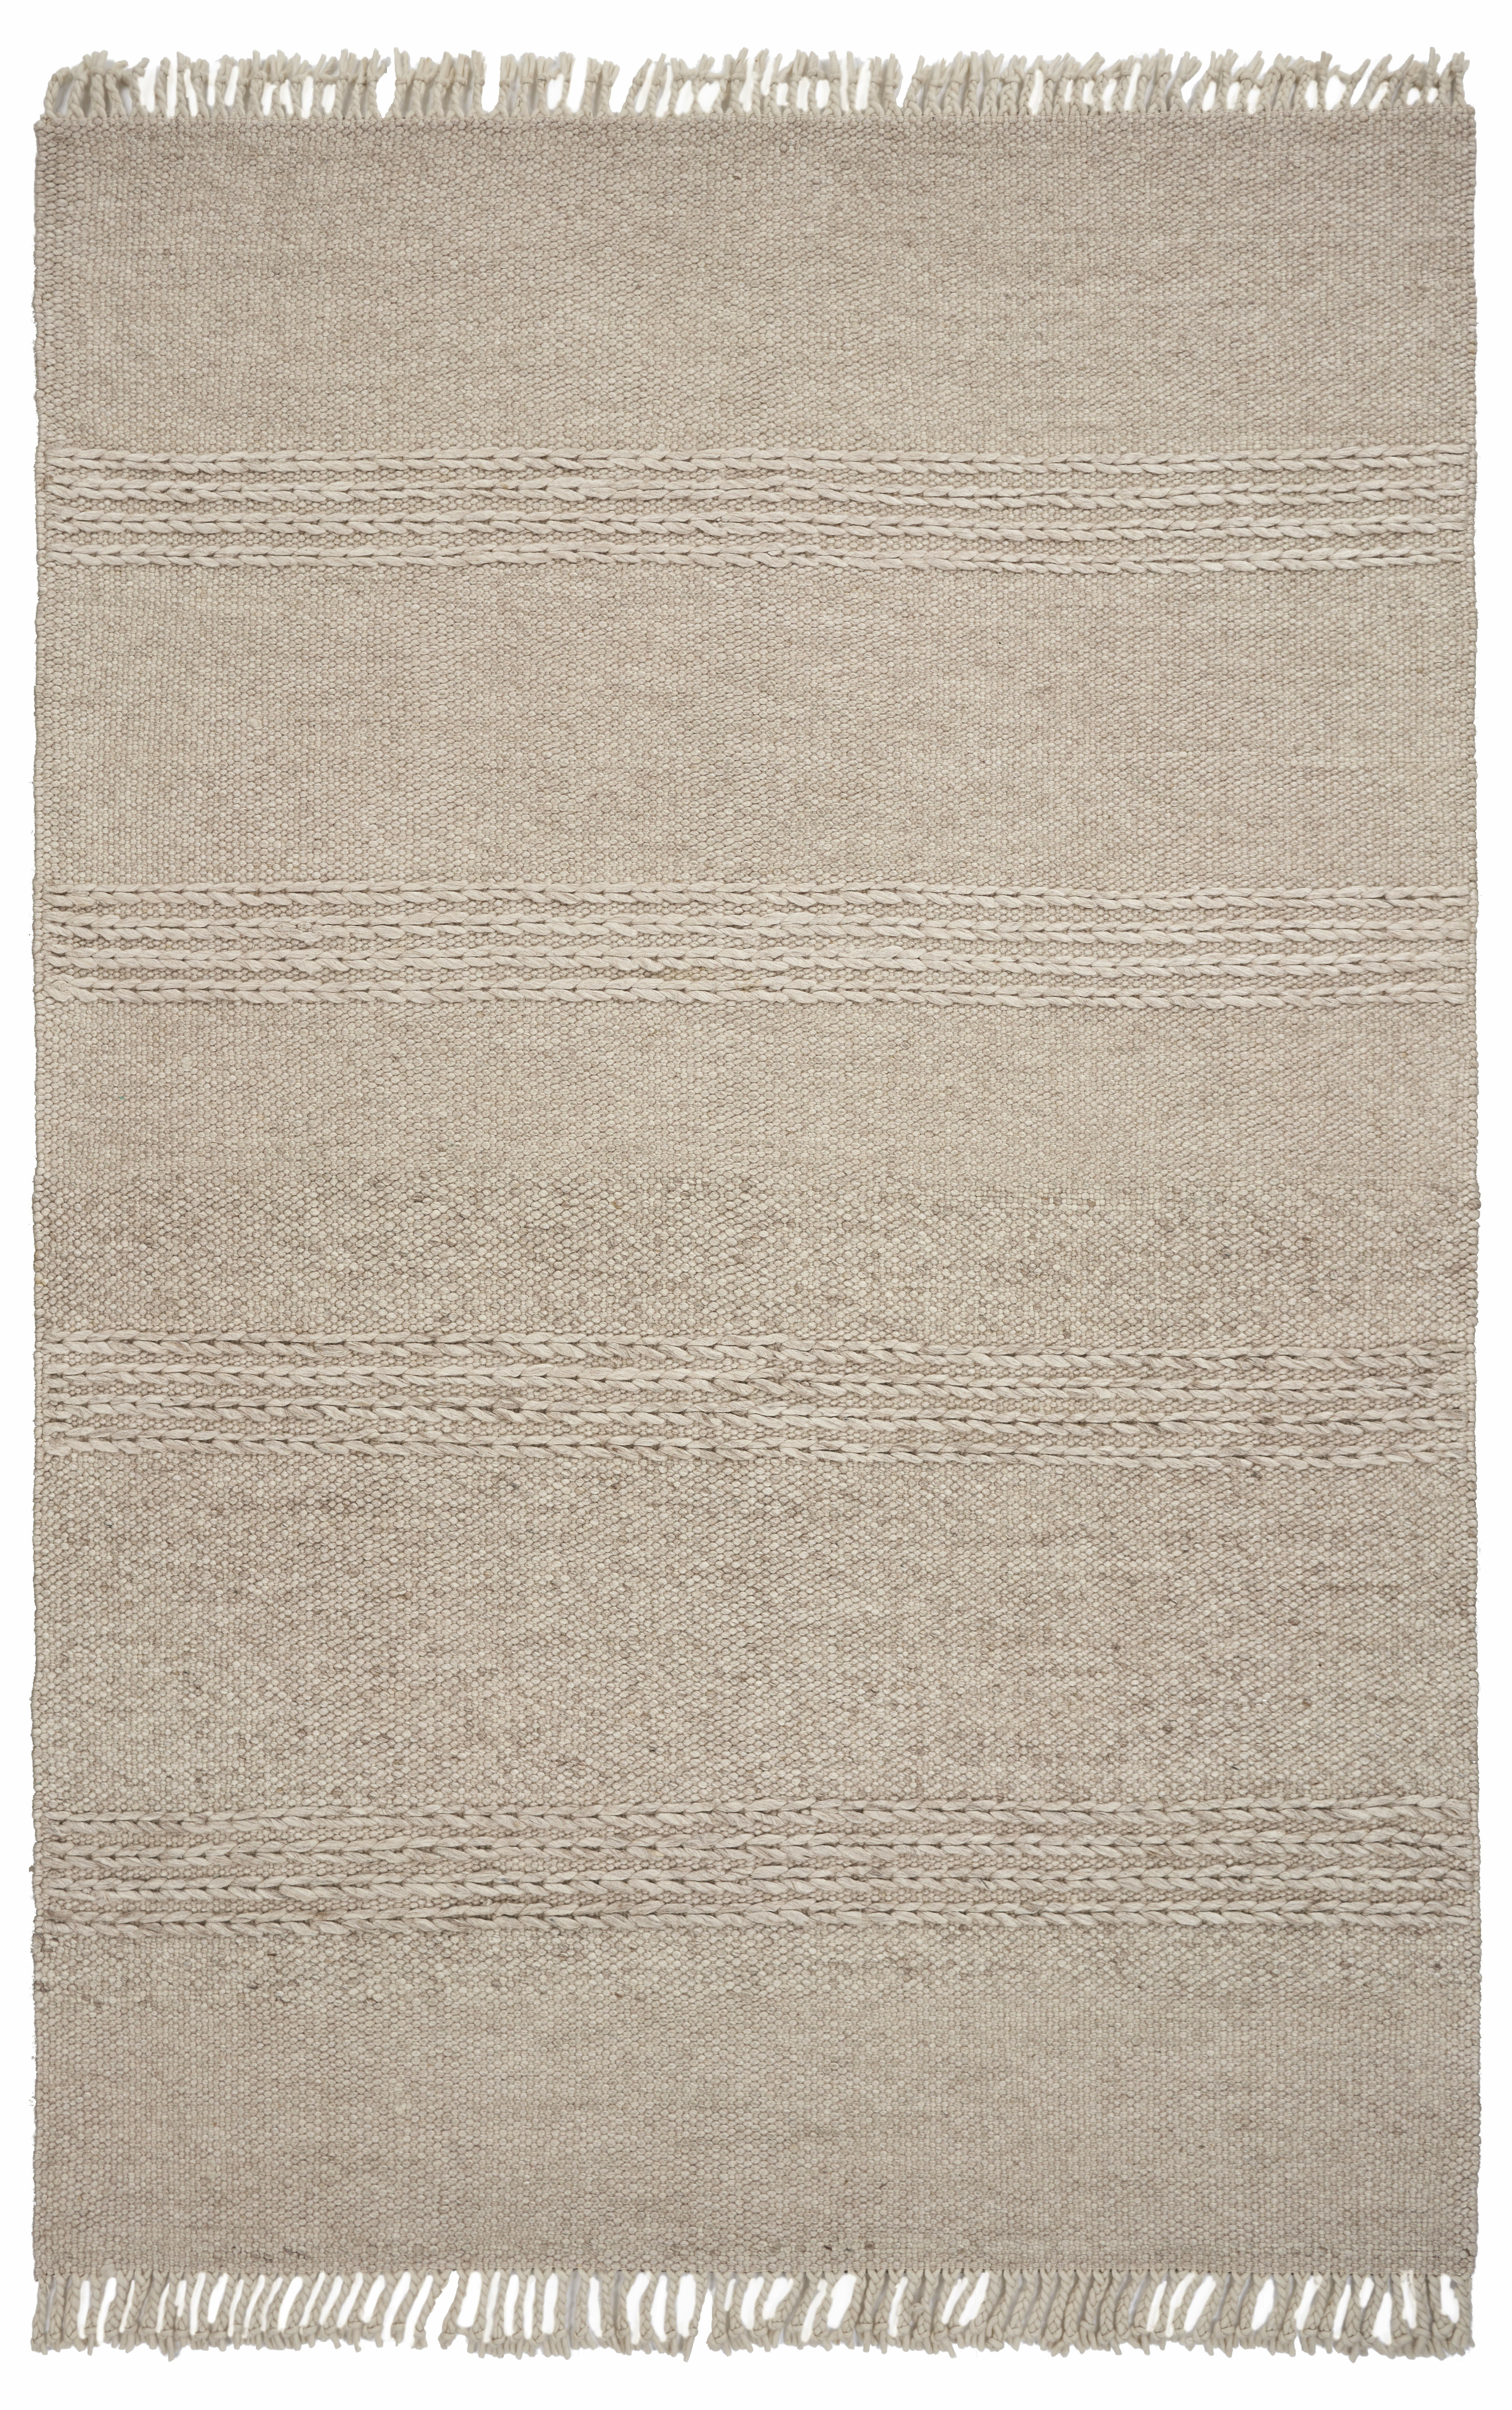 Gracie Oaks Hogan Cable Knit Hand Woven Wool Beige Area Rug Wayfair